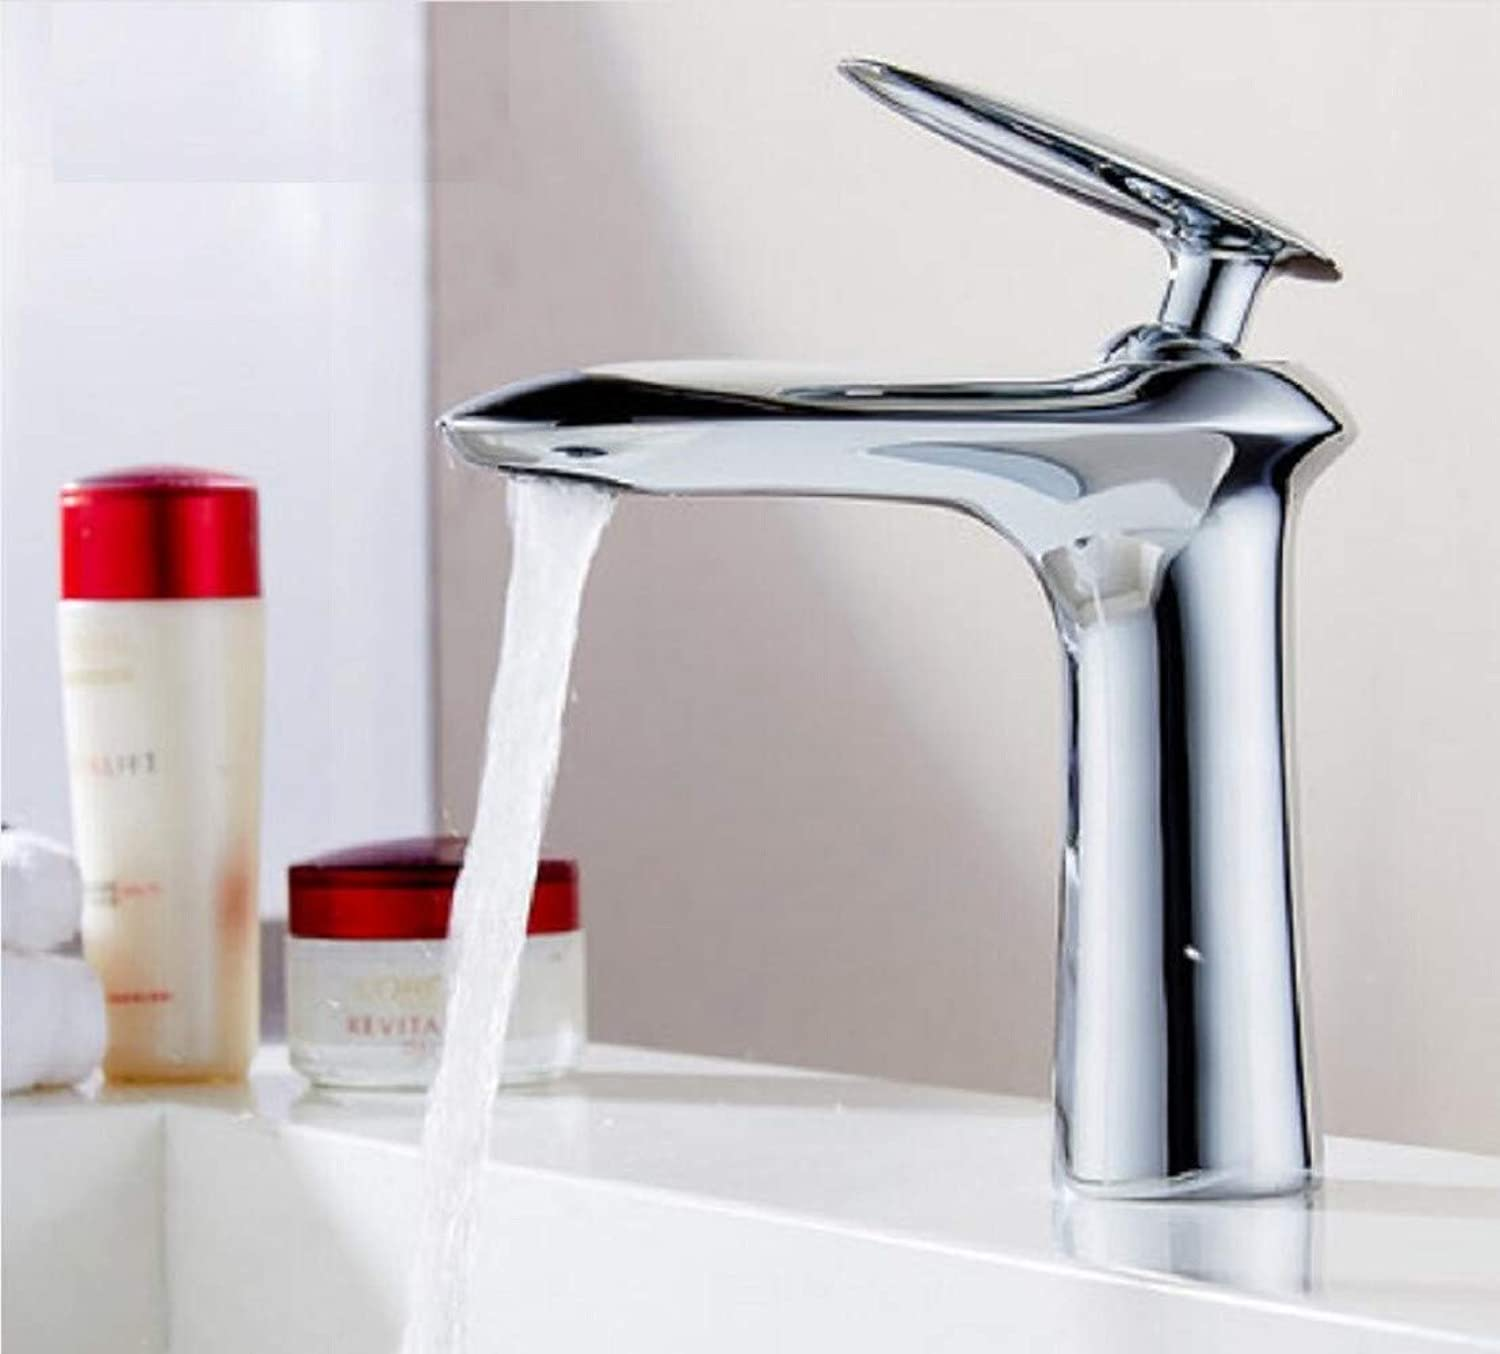 Bathroom Taps?Main Cold and Hot Basin Single Hole Single Stand Up Platform Basin European Style Faucet Bathroom Sink Tap Basin Sink Mixer Tap